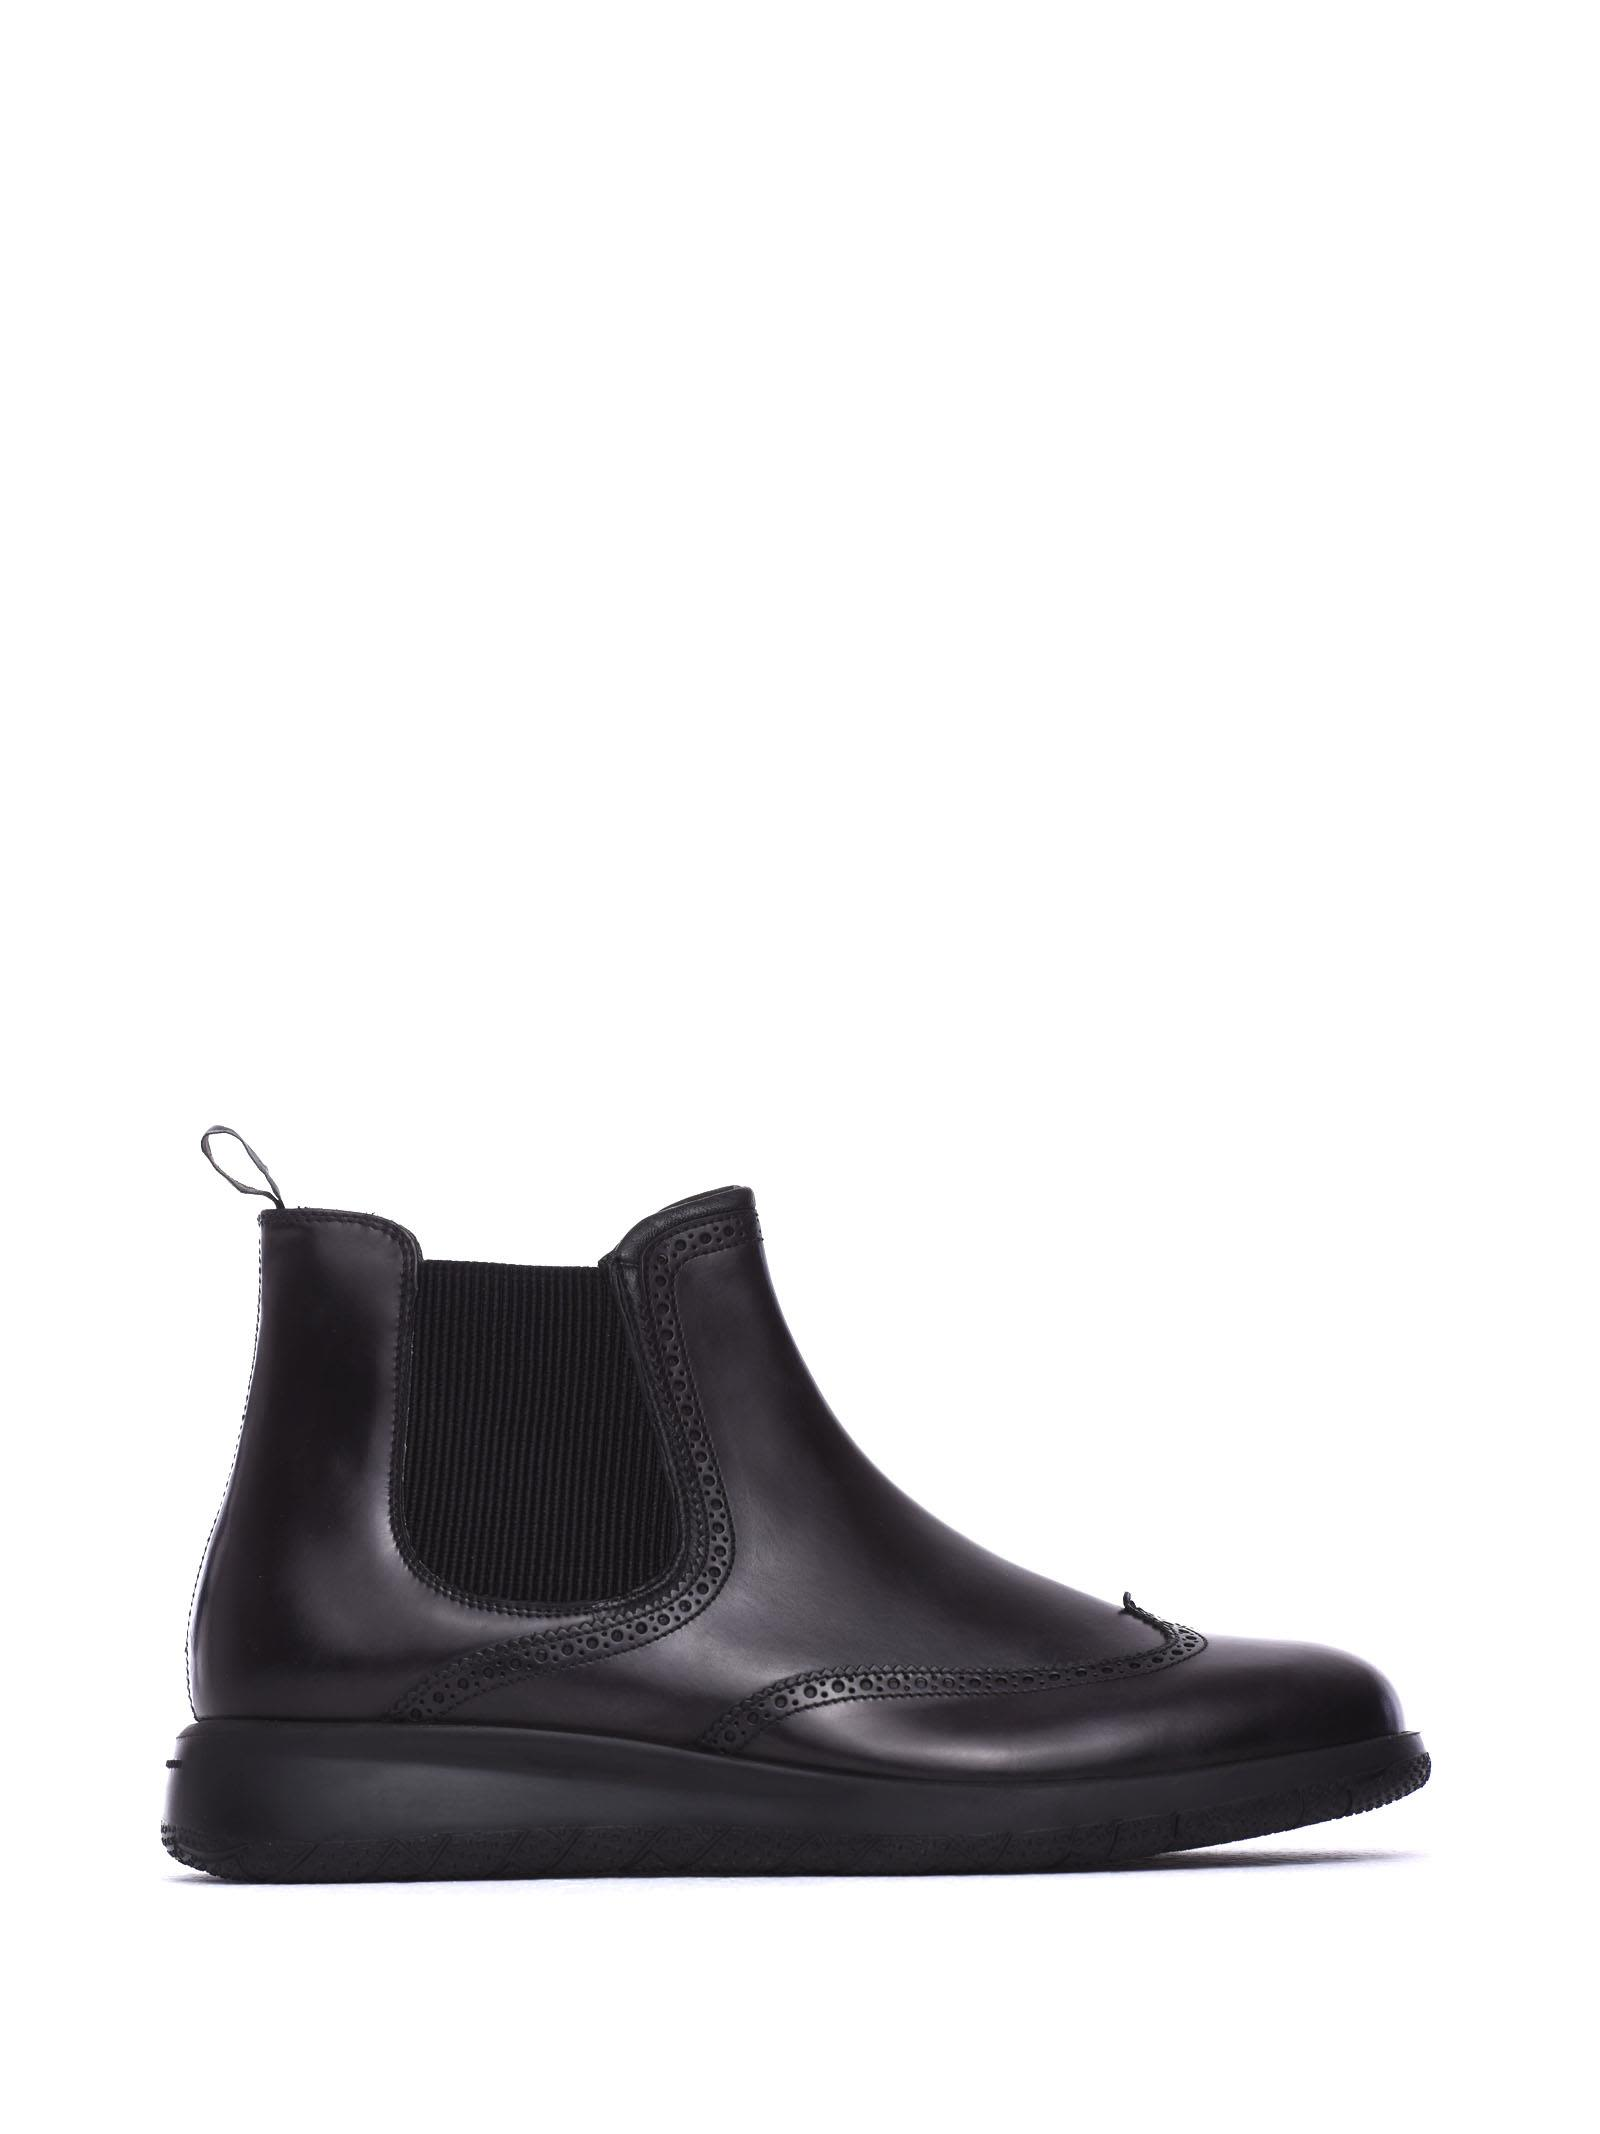 FRATELLI ROSSETTI ONE Beatles Ankle Boots In Black Calf Leather in Nero